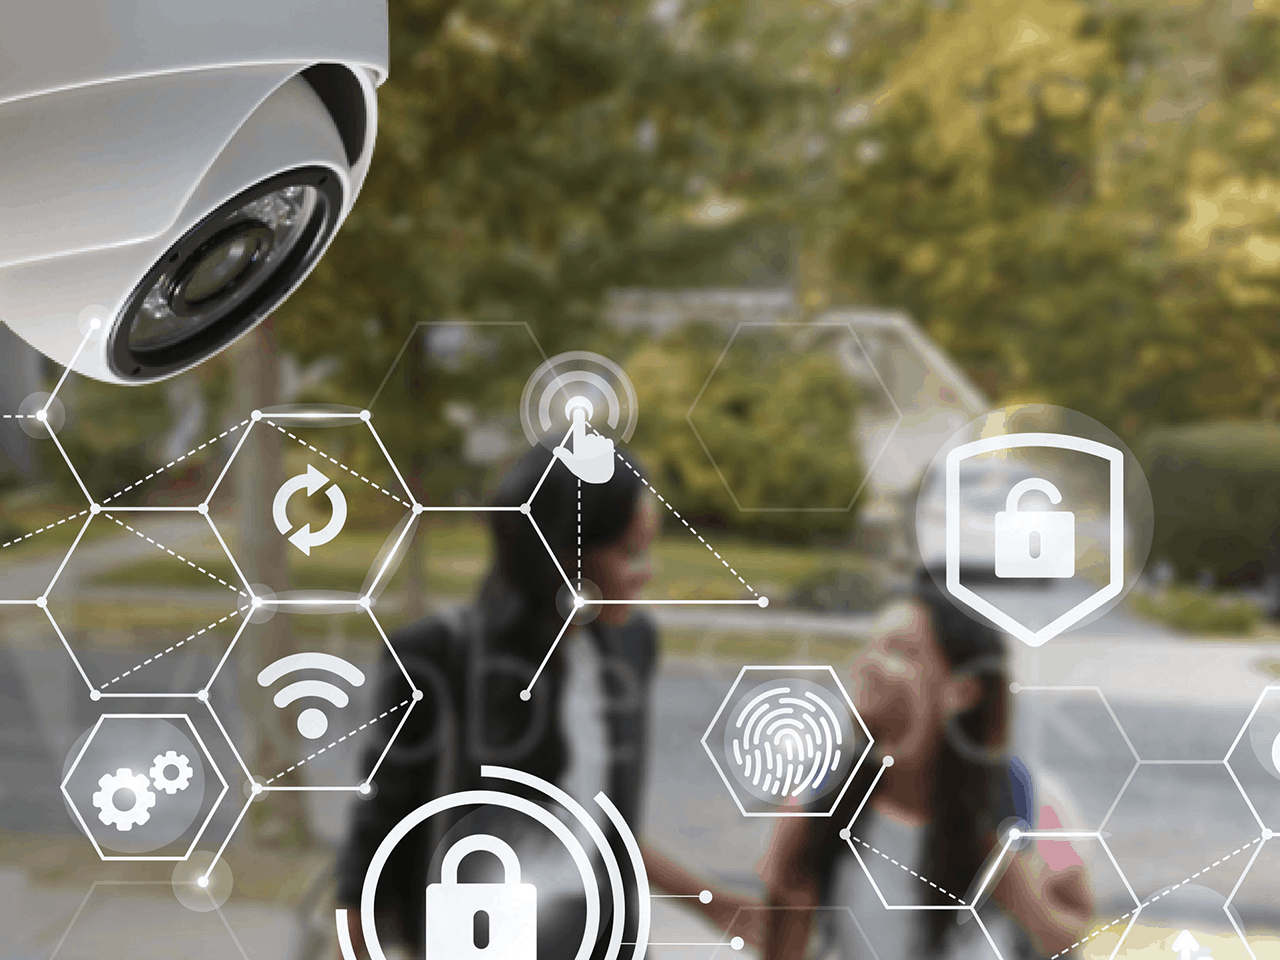 Six ways CCTV monitoring can benefit your business